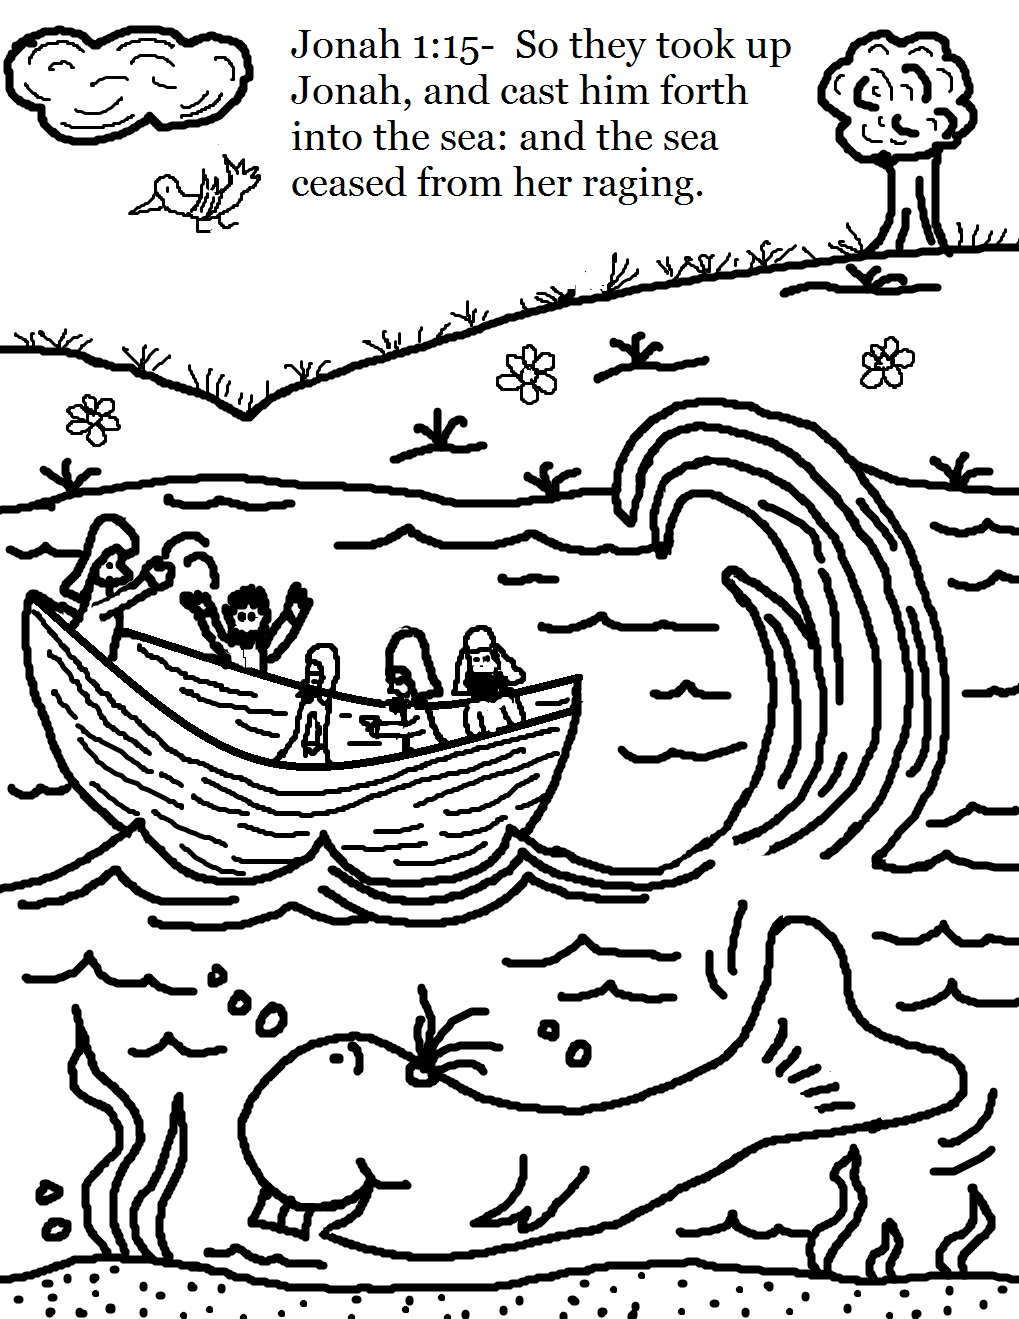 jonah and the whale kids coloring pages find this pin and more on